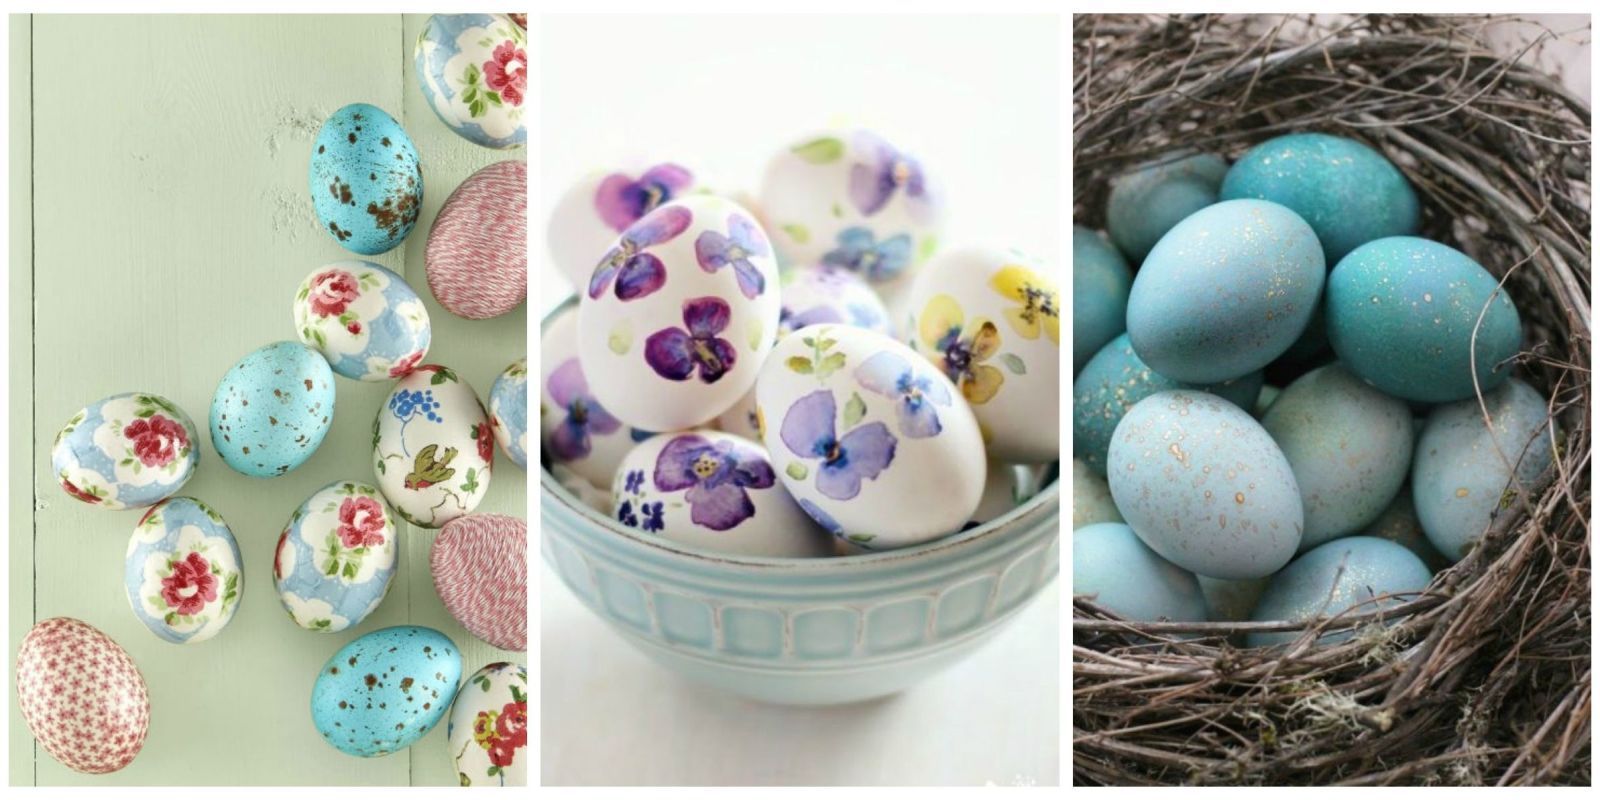 60 fun easter egg designs creative ideas for decorating Creative easter egg decorating ideas